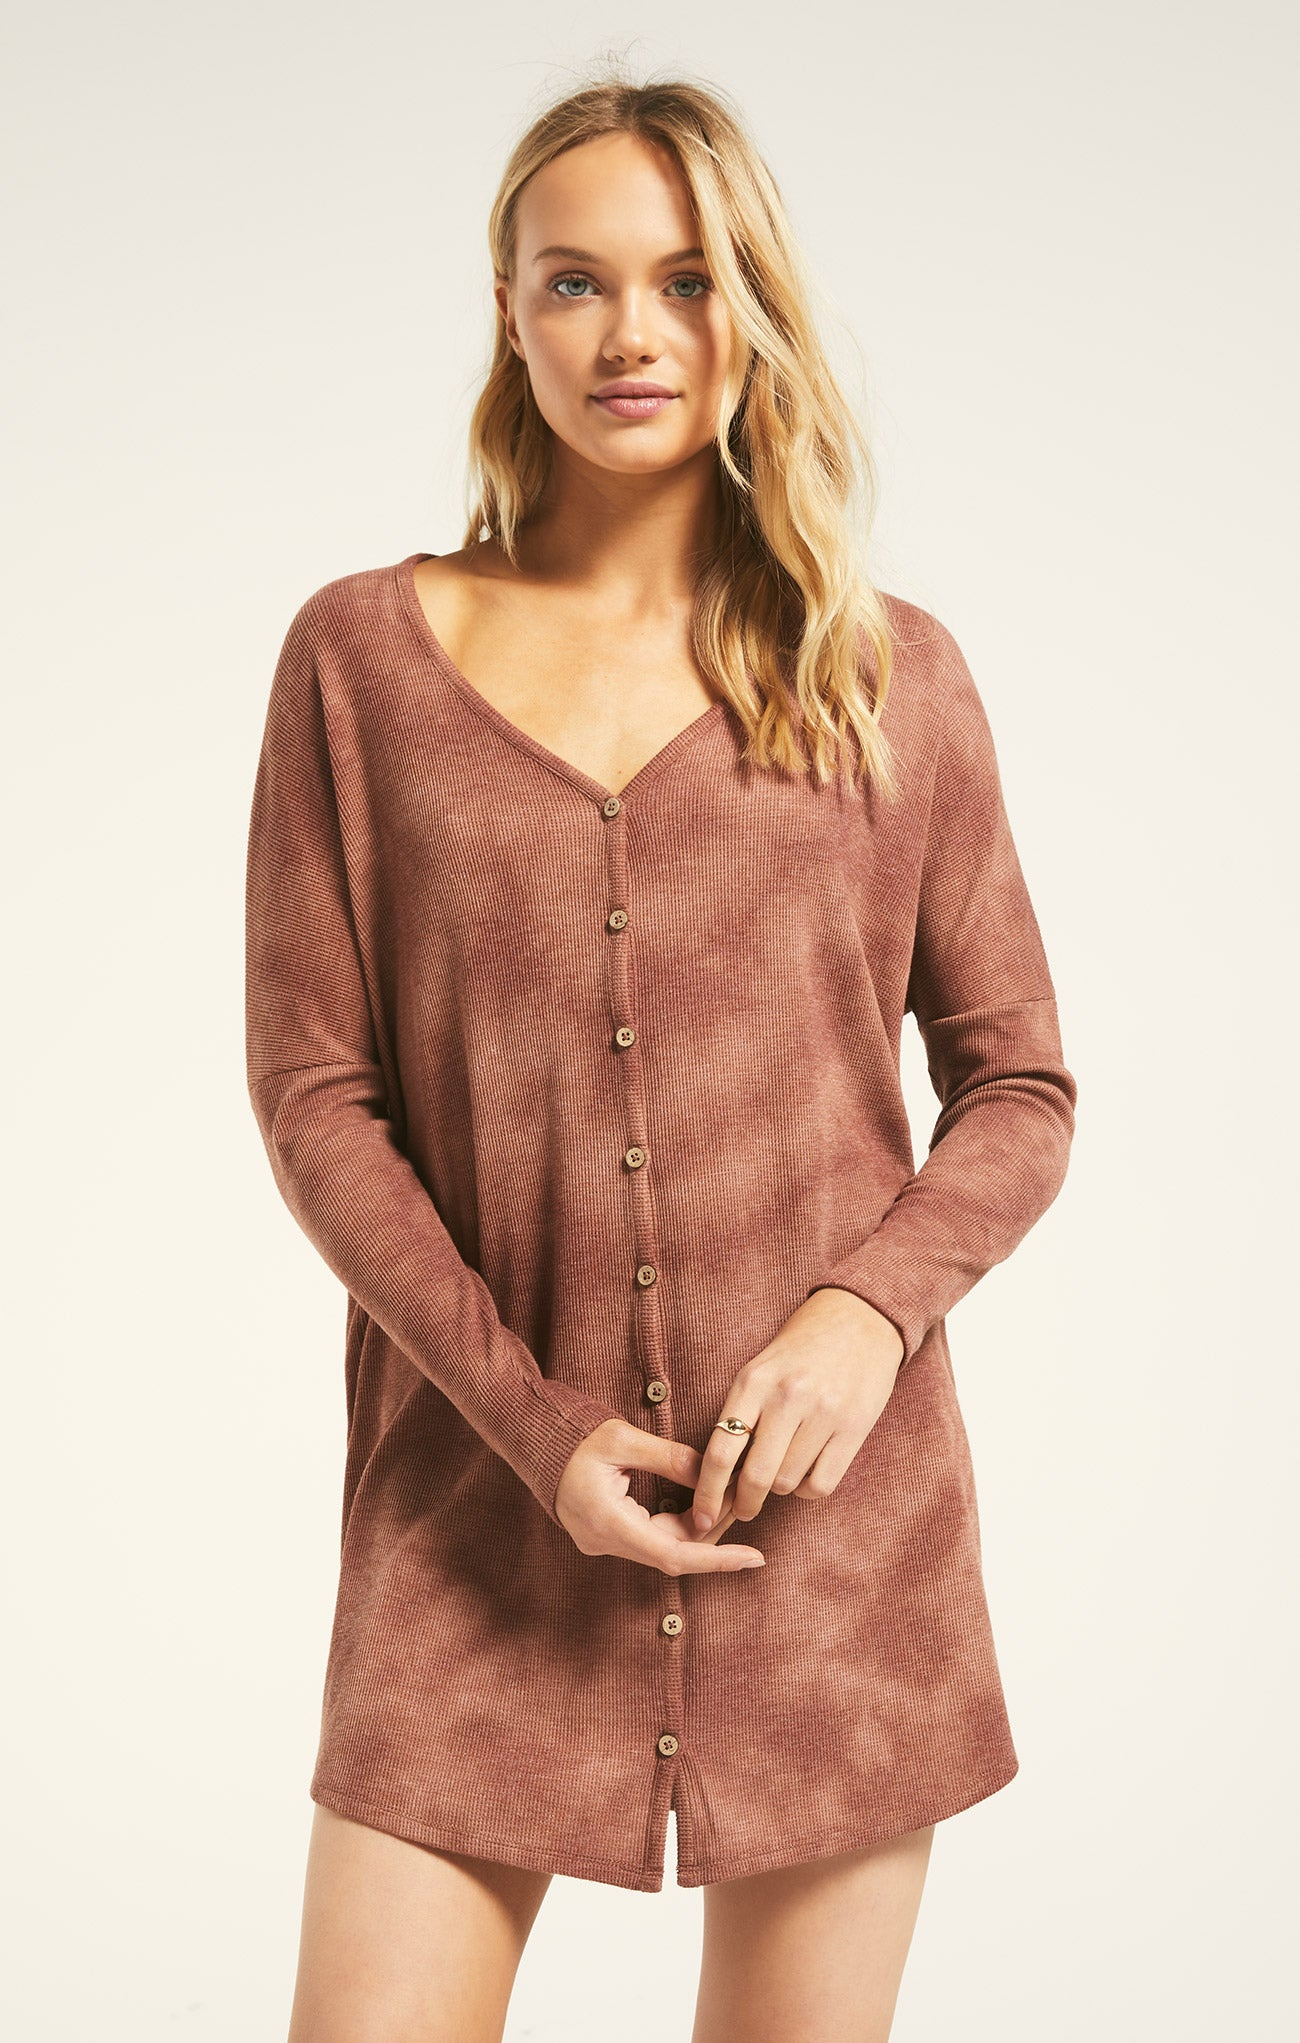 Dresses Grove Thermal Dress Grove Thermal Dress